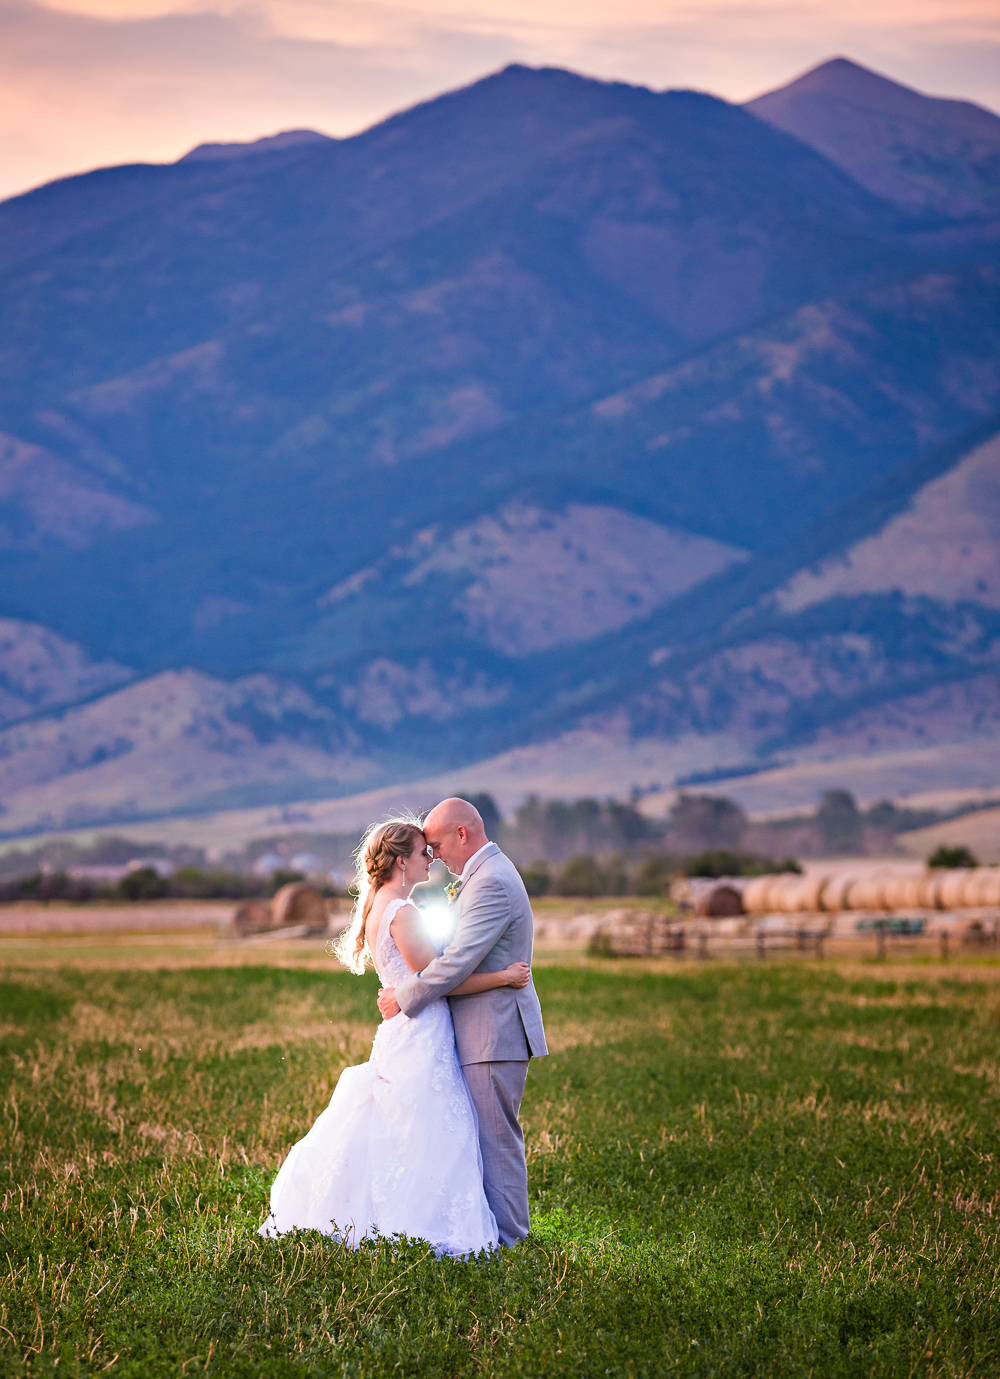 bozeman-montana-wedding-roys-barn-sunset-photo-bridger-mountains.jpg